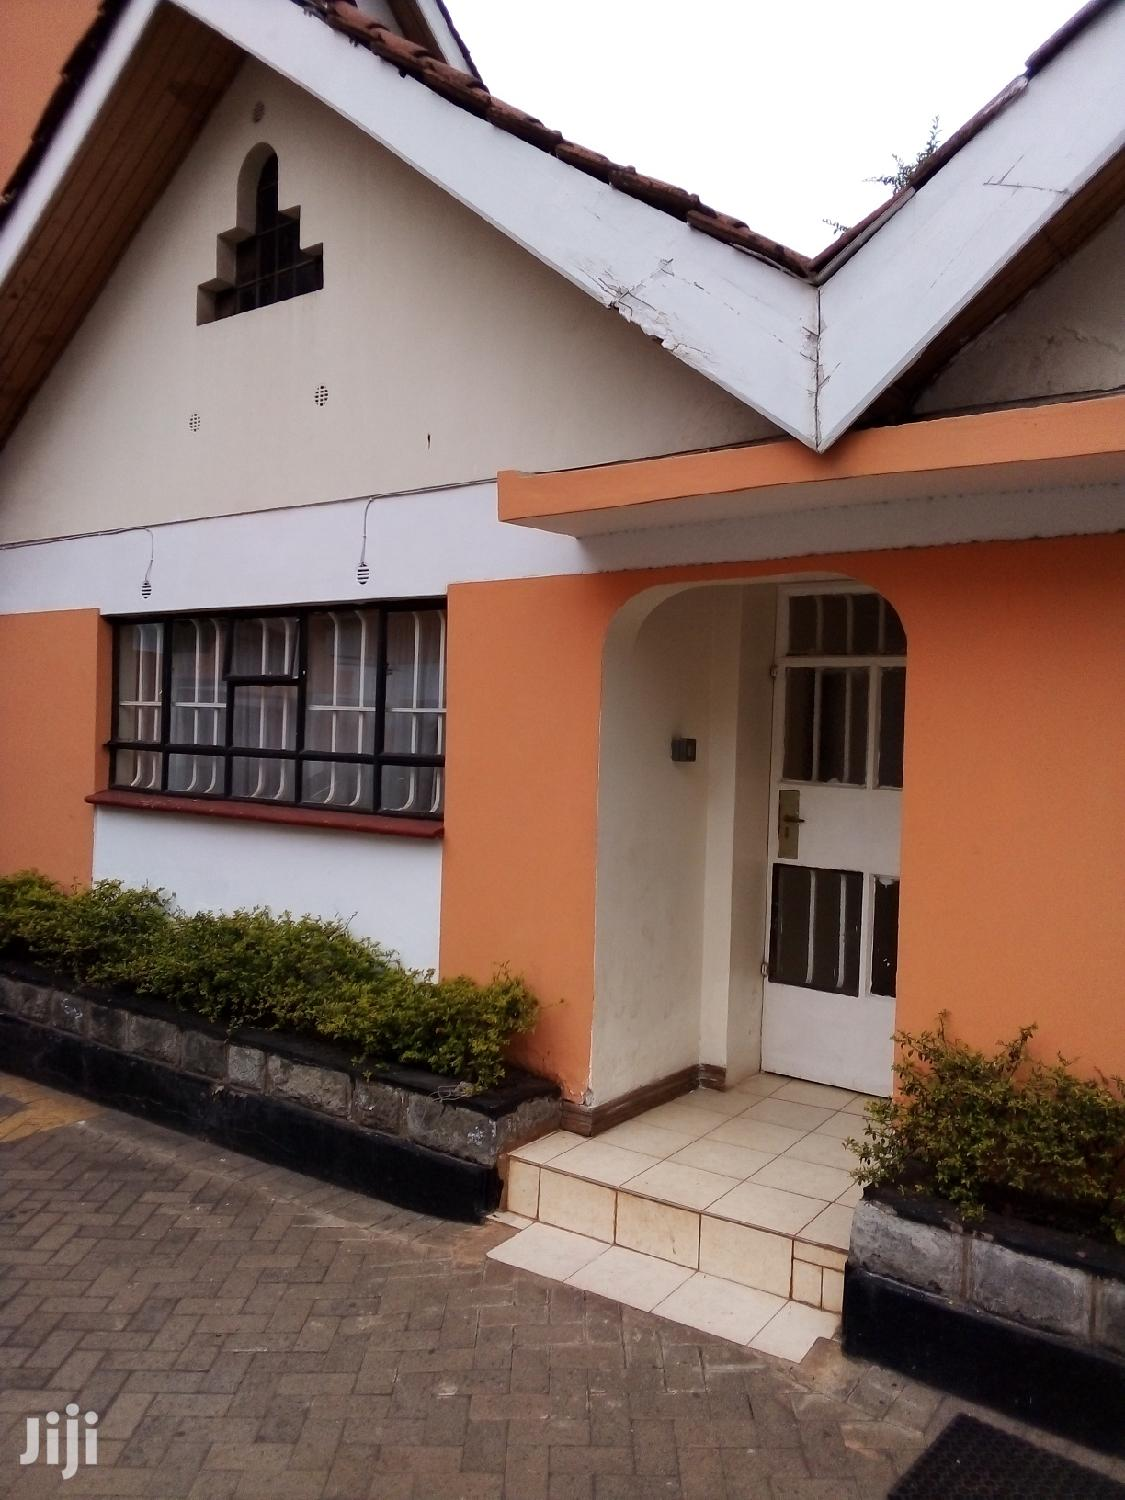 Attractive Studio in Lavington to Let. | Houses & Apartments For Rent for sale in Lavington, Nairobi, Kenya